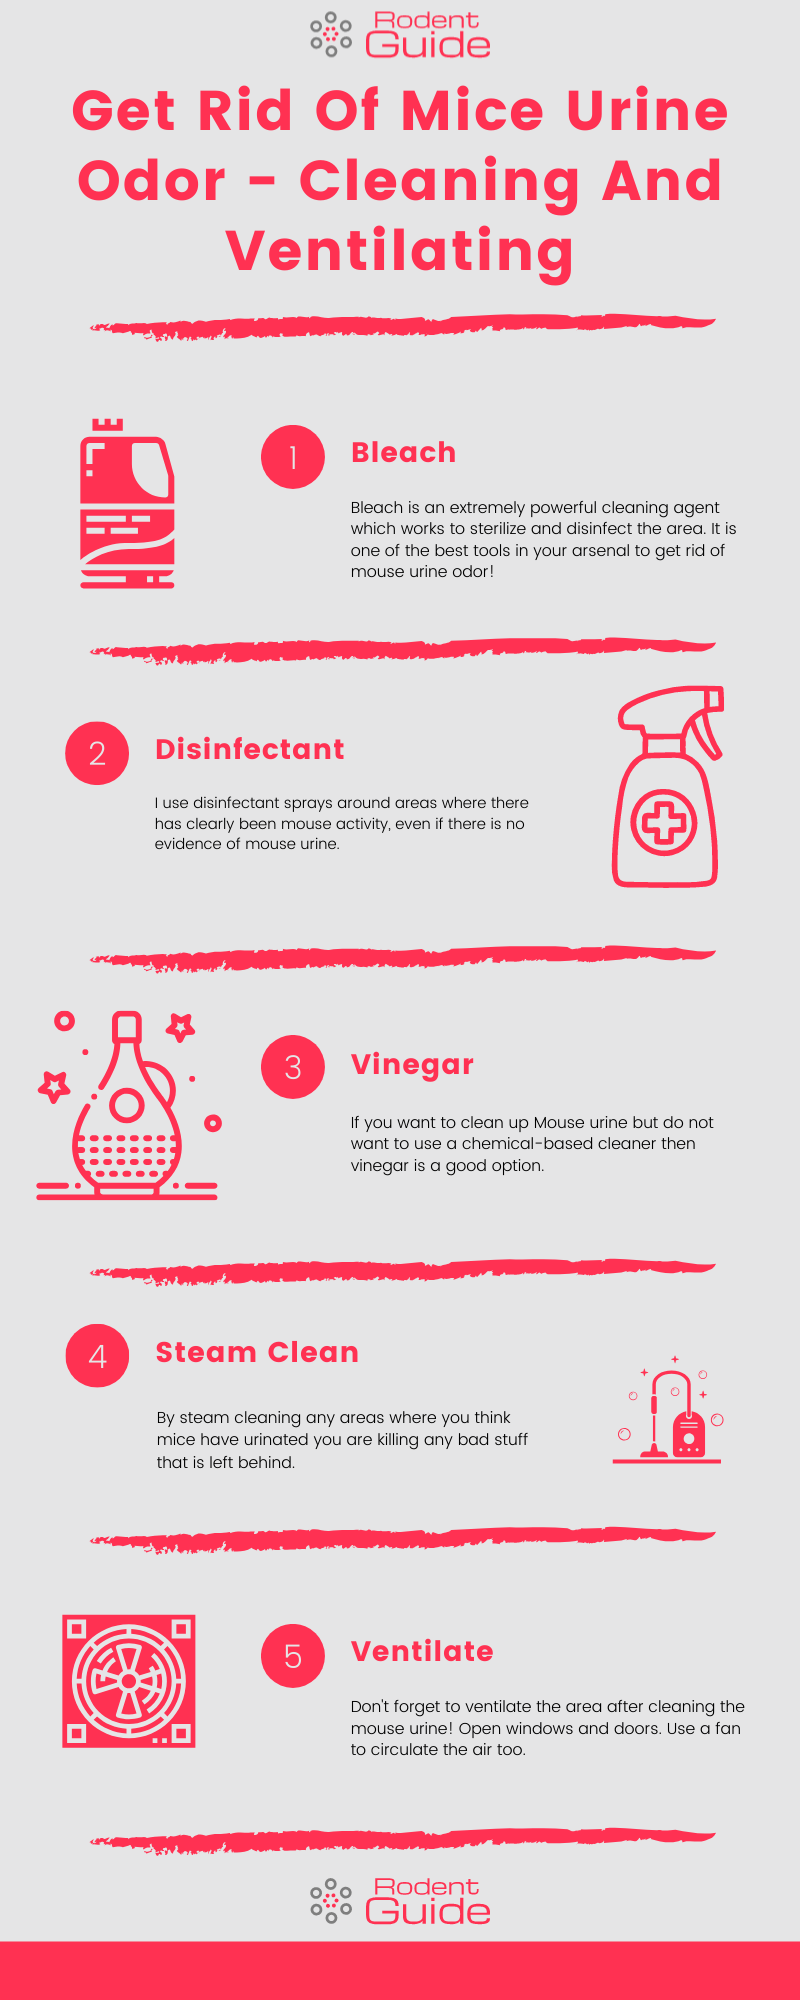 Get Rid Of Mice Urine Odor - Cleaning And Ventilating Infographic